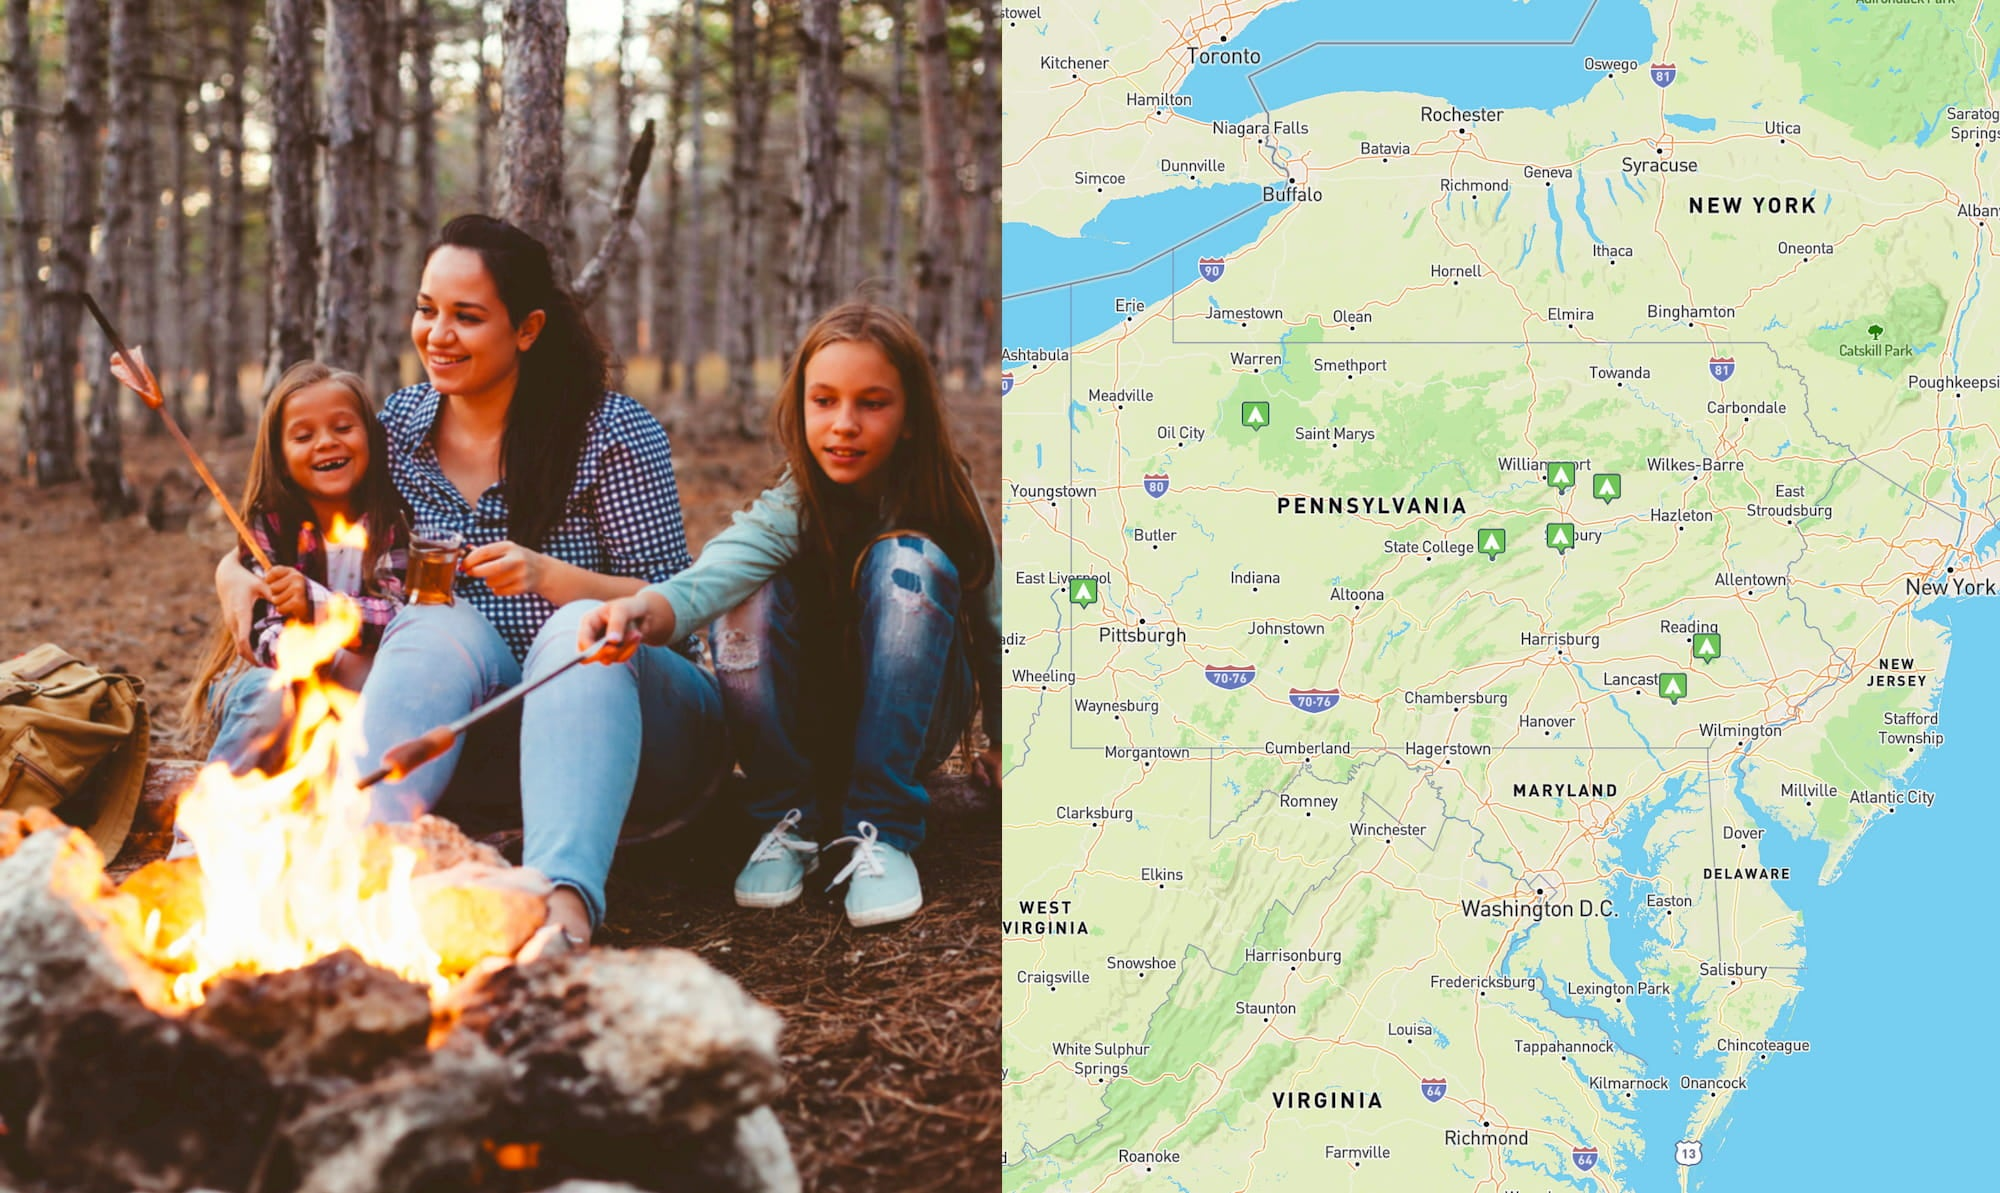 left: family roasting marshmallows, right: map of campgrounds listed below